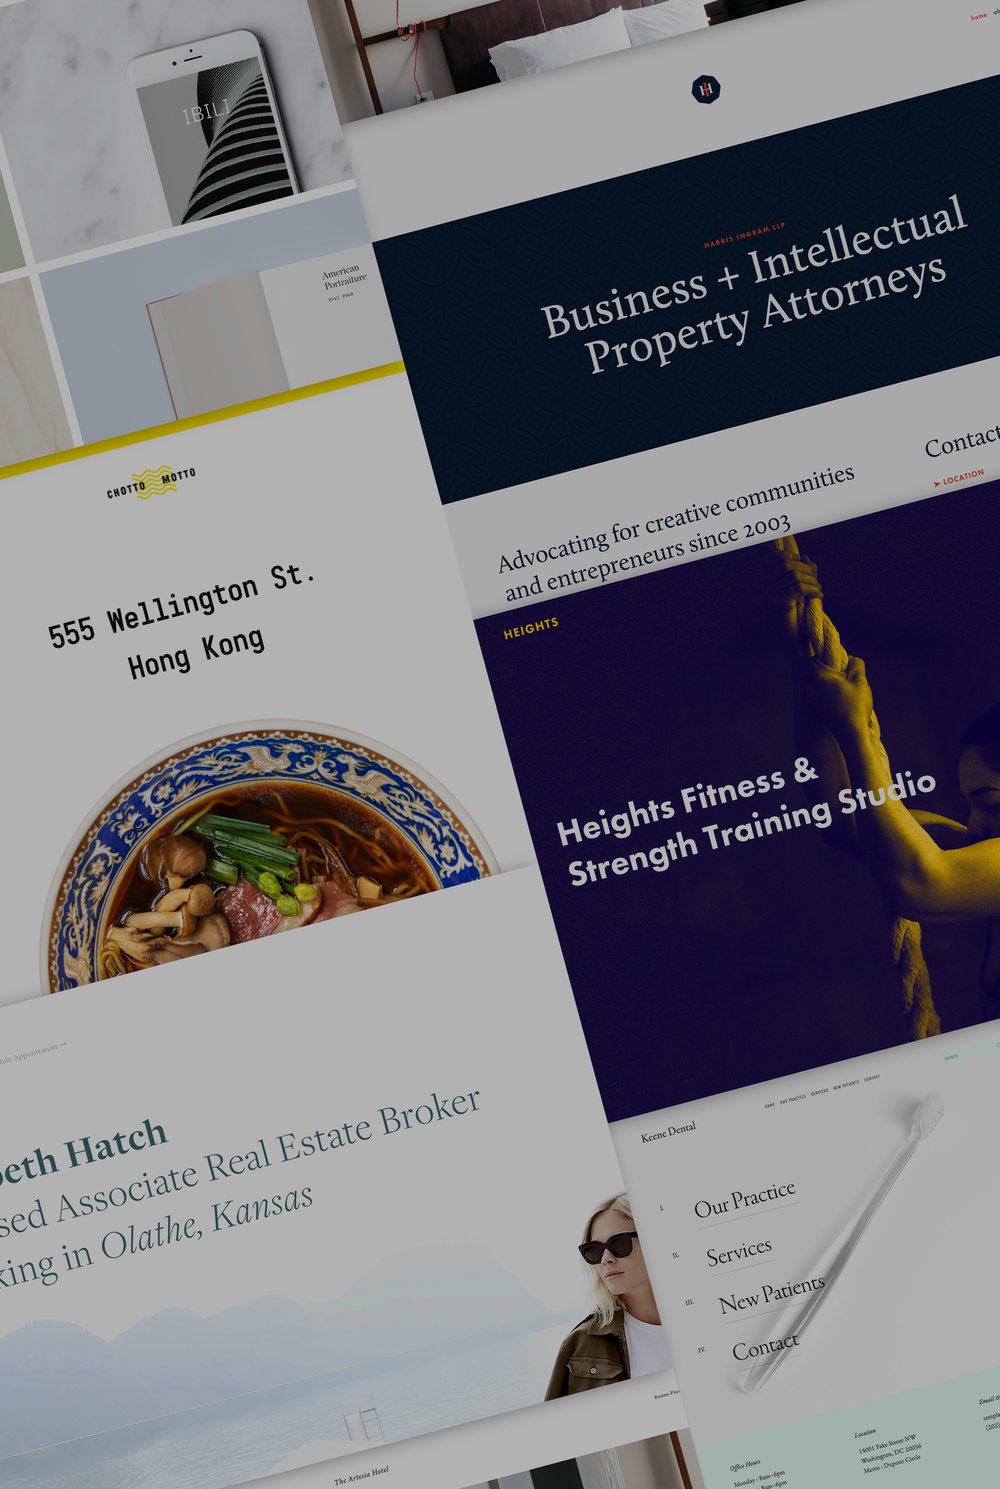 7 new templates for businesses and professional services the 7 new templates for businesses and professional services the official squarespace blog fbccfo Gallery